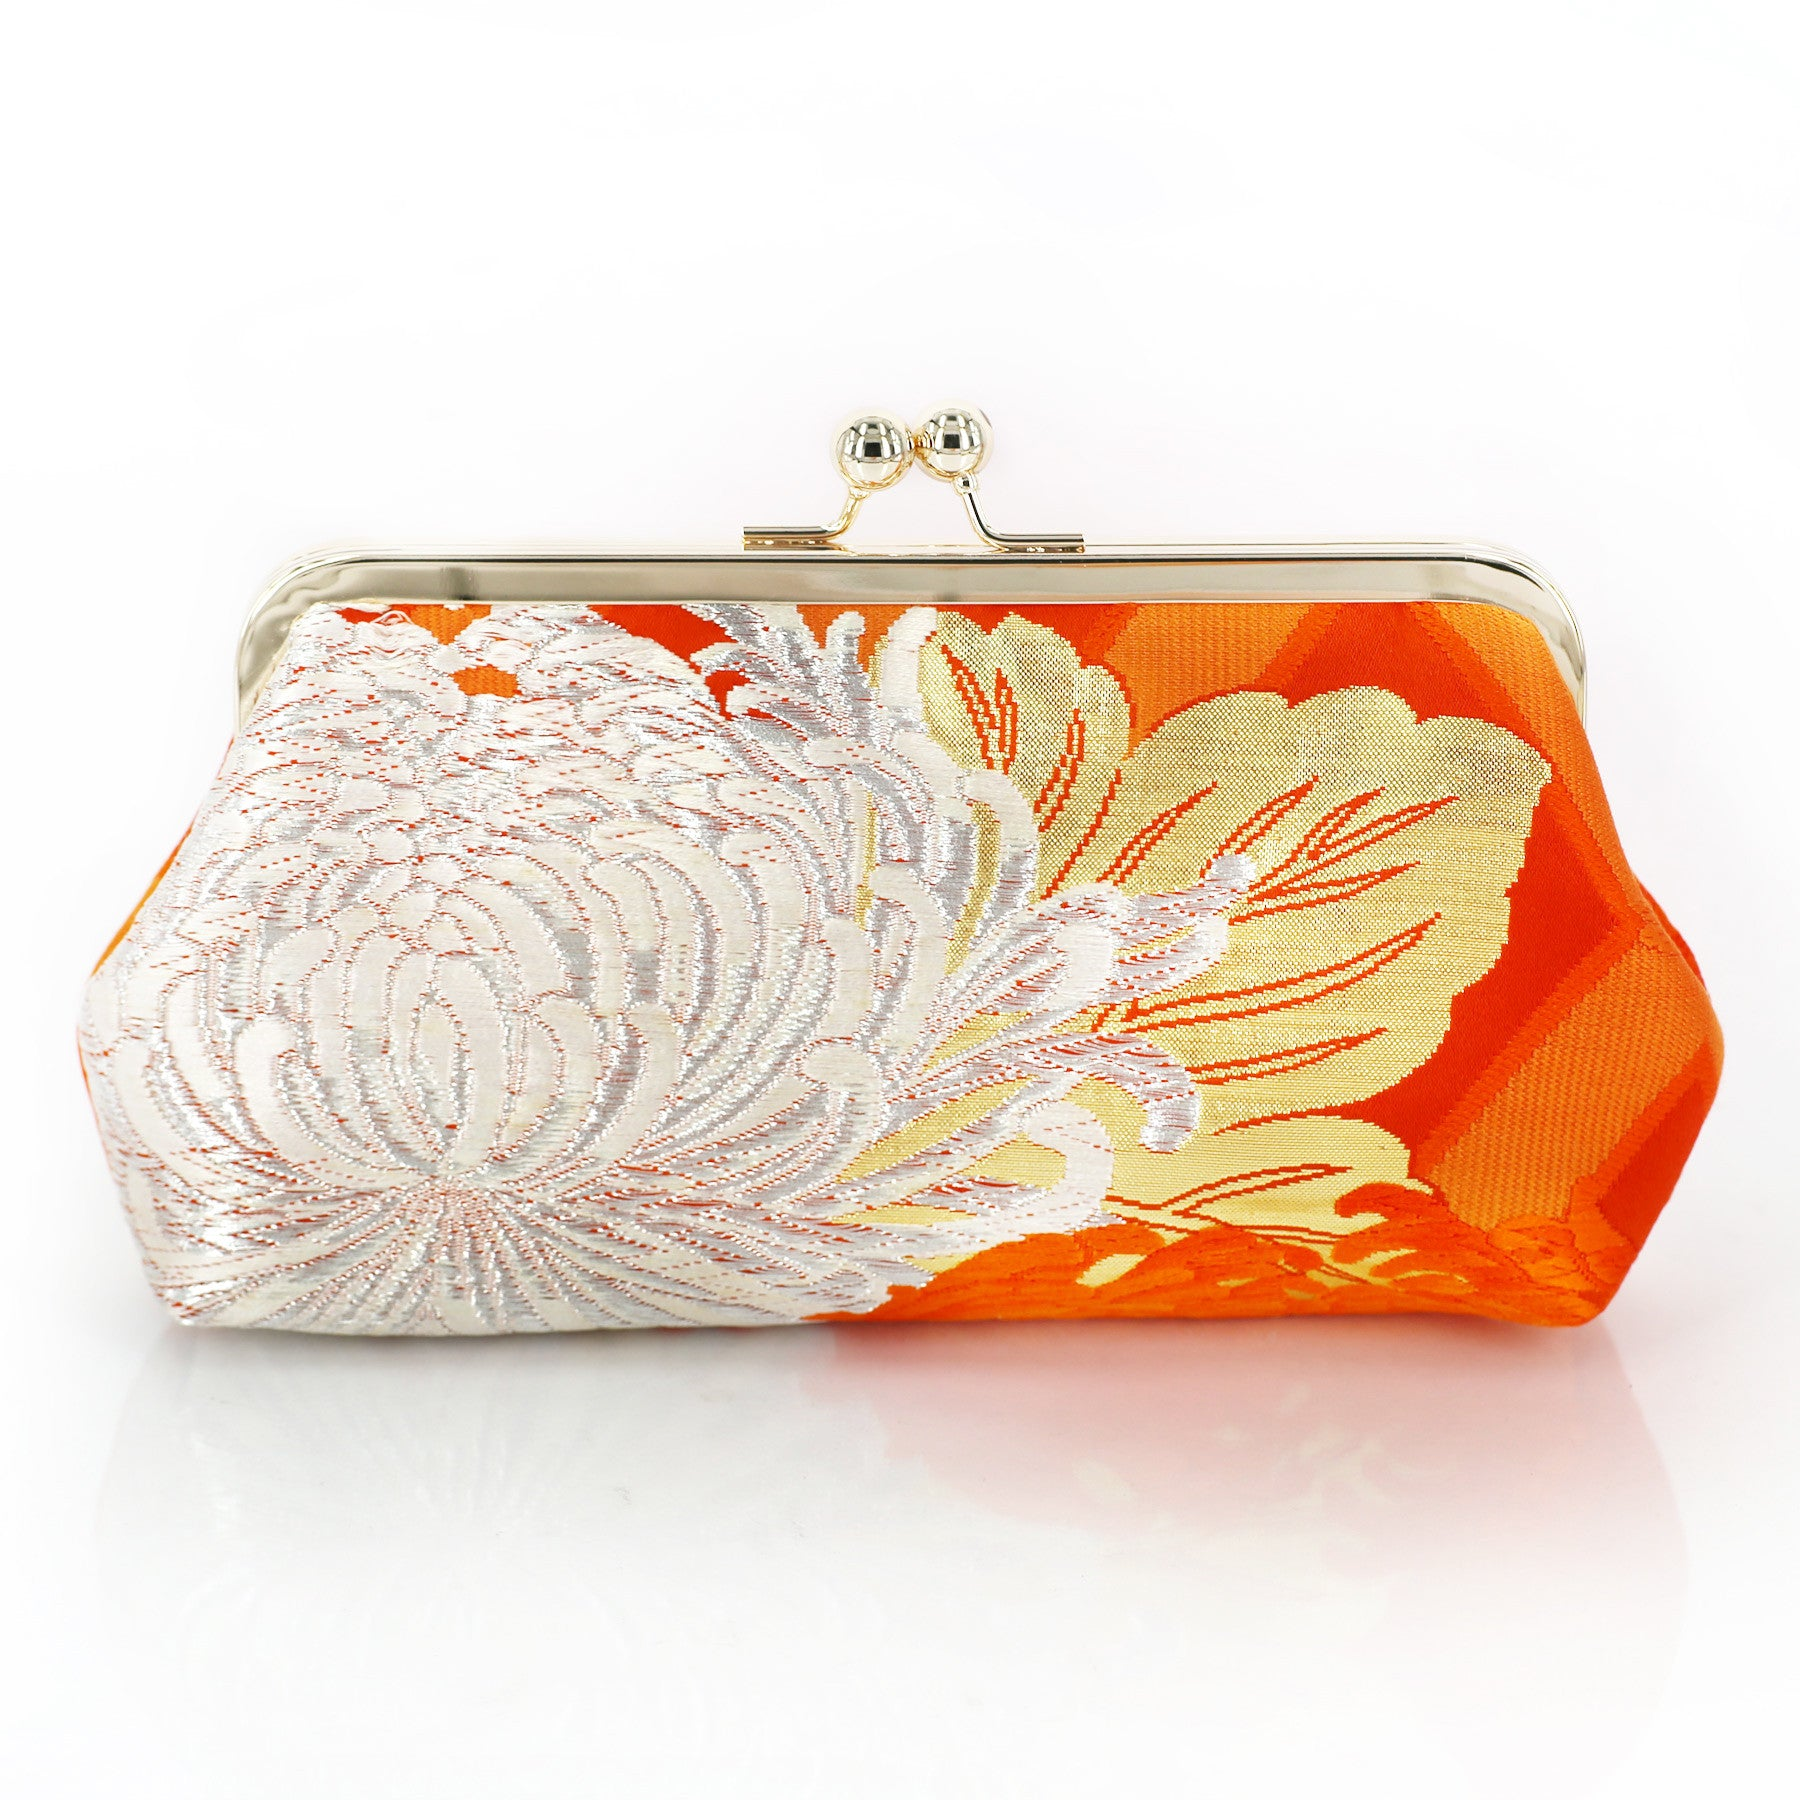 Vintage Story Flower Japanese Chrysantemum 2 Heritage Refashioned Sustainable Fashion Clutches Kimono Kwa Chrysanthemum Kiku Orange Clutch Upcycled From